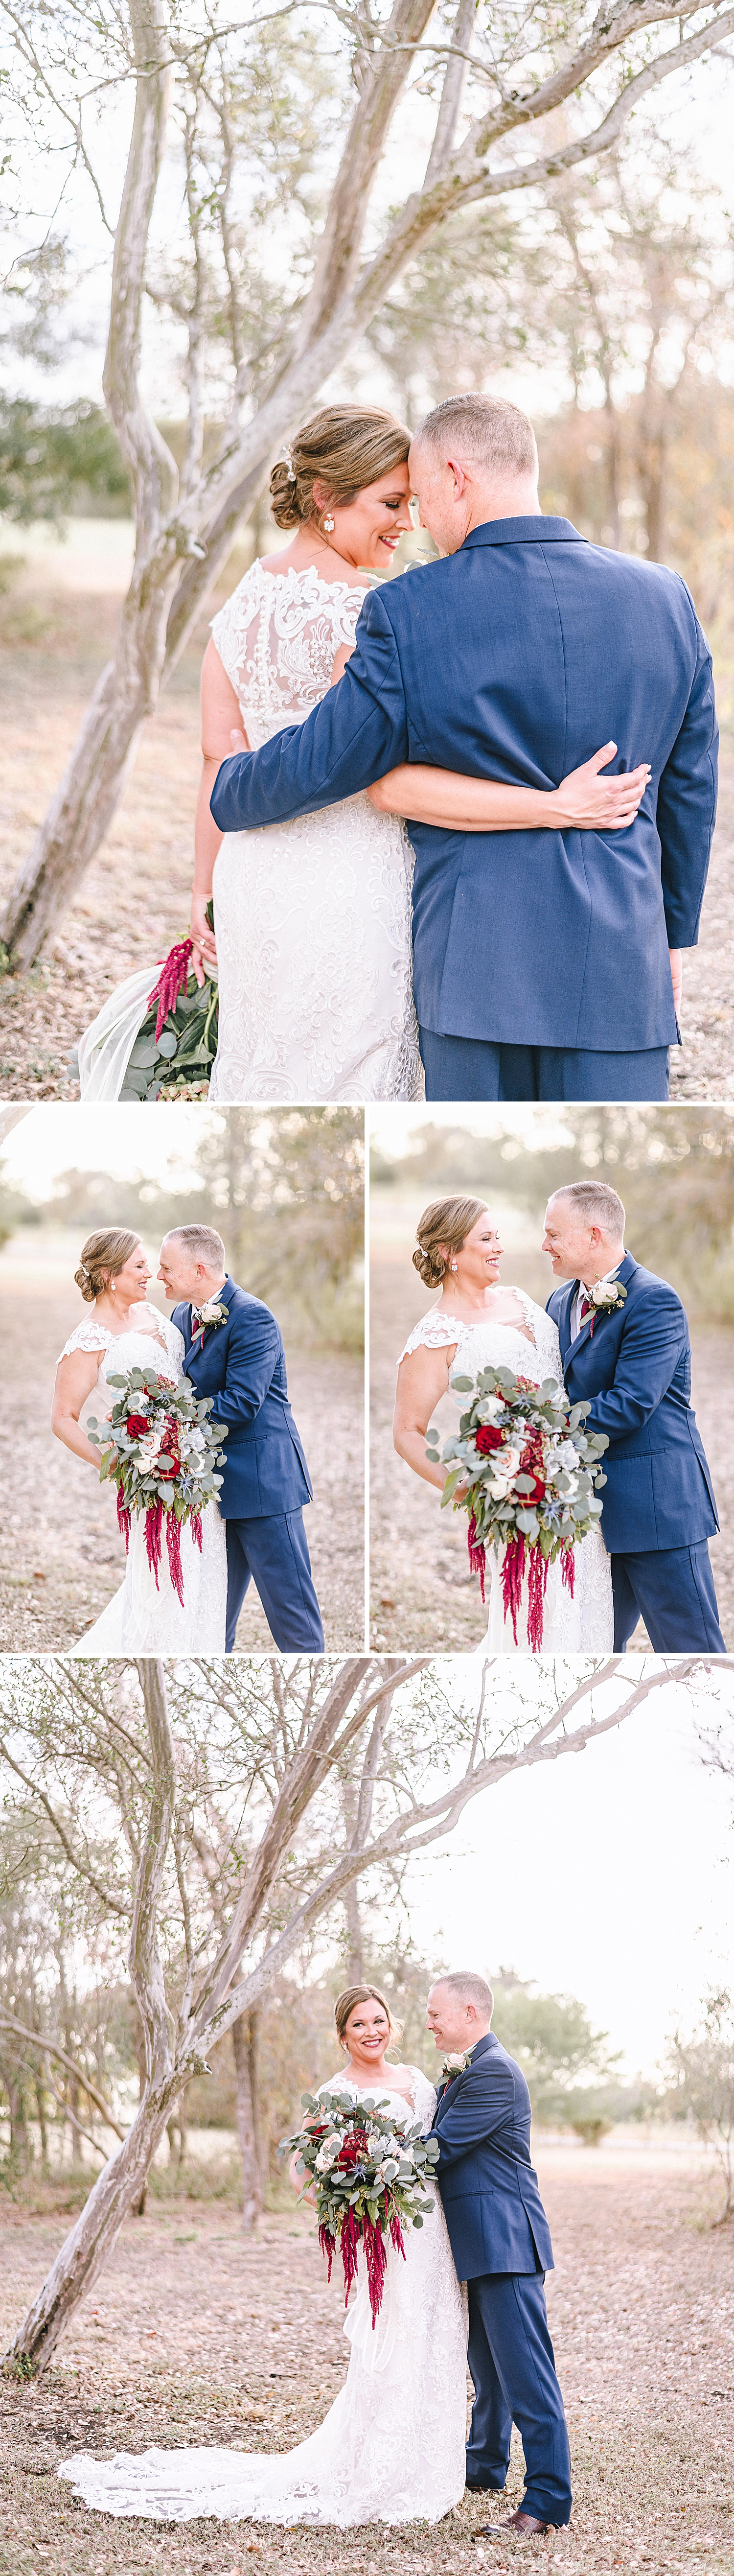 Geronimo-Oaks-Wedding-Venue-Seguin-Texas-Elegant-Navy-Burgundy-Wedding-Carly-Barton-Photography_0051.jpg